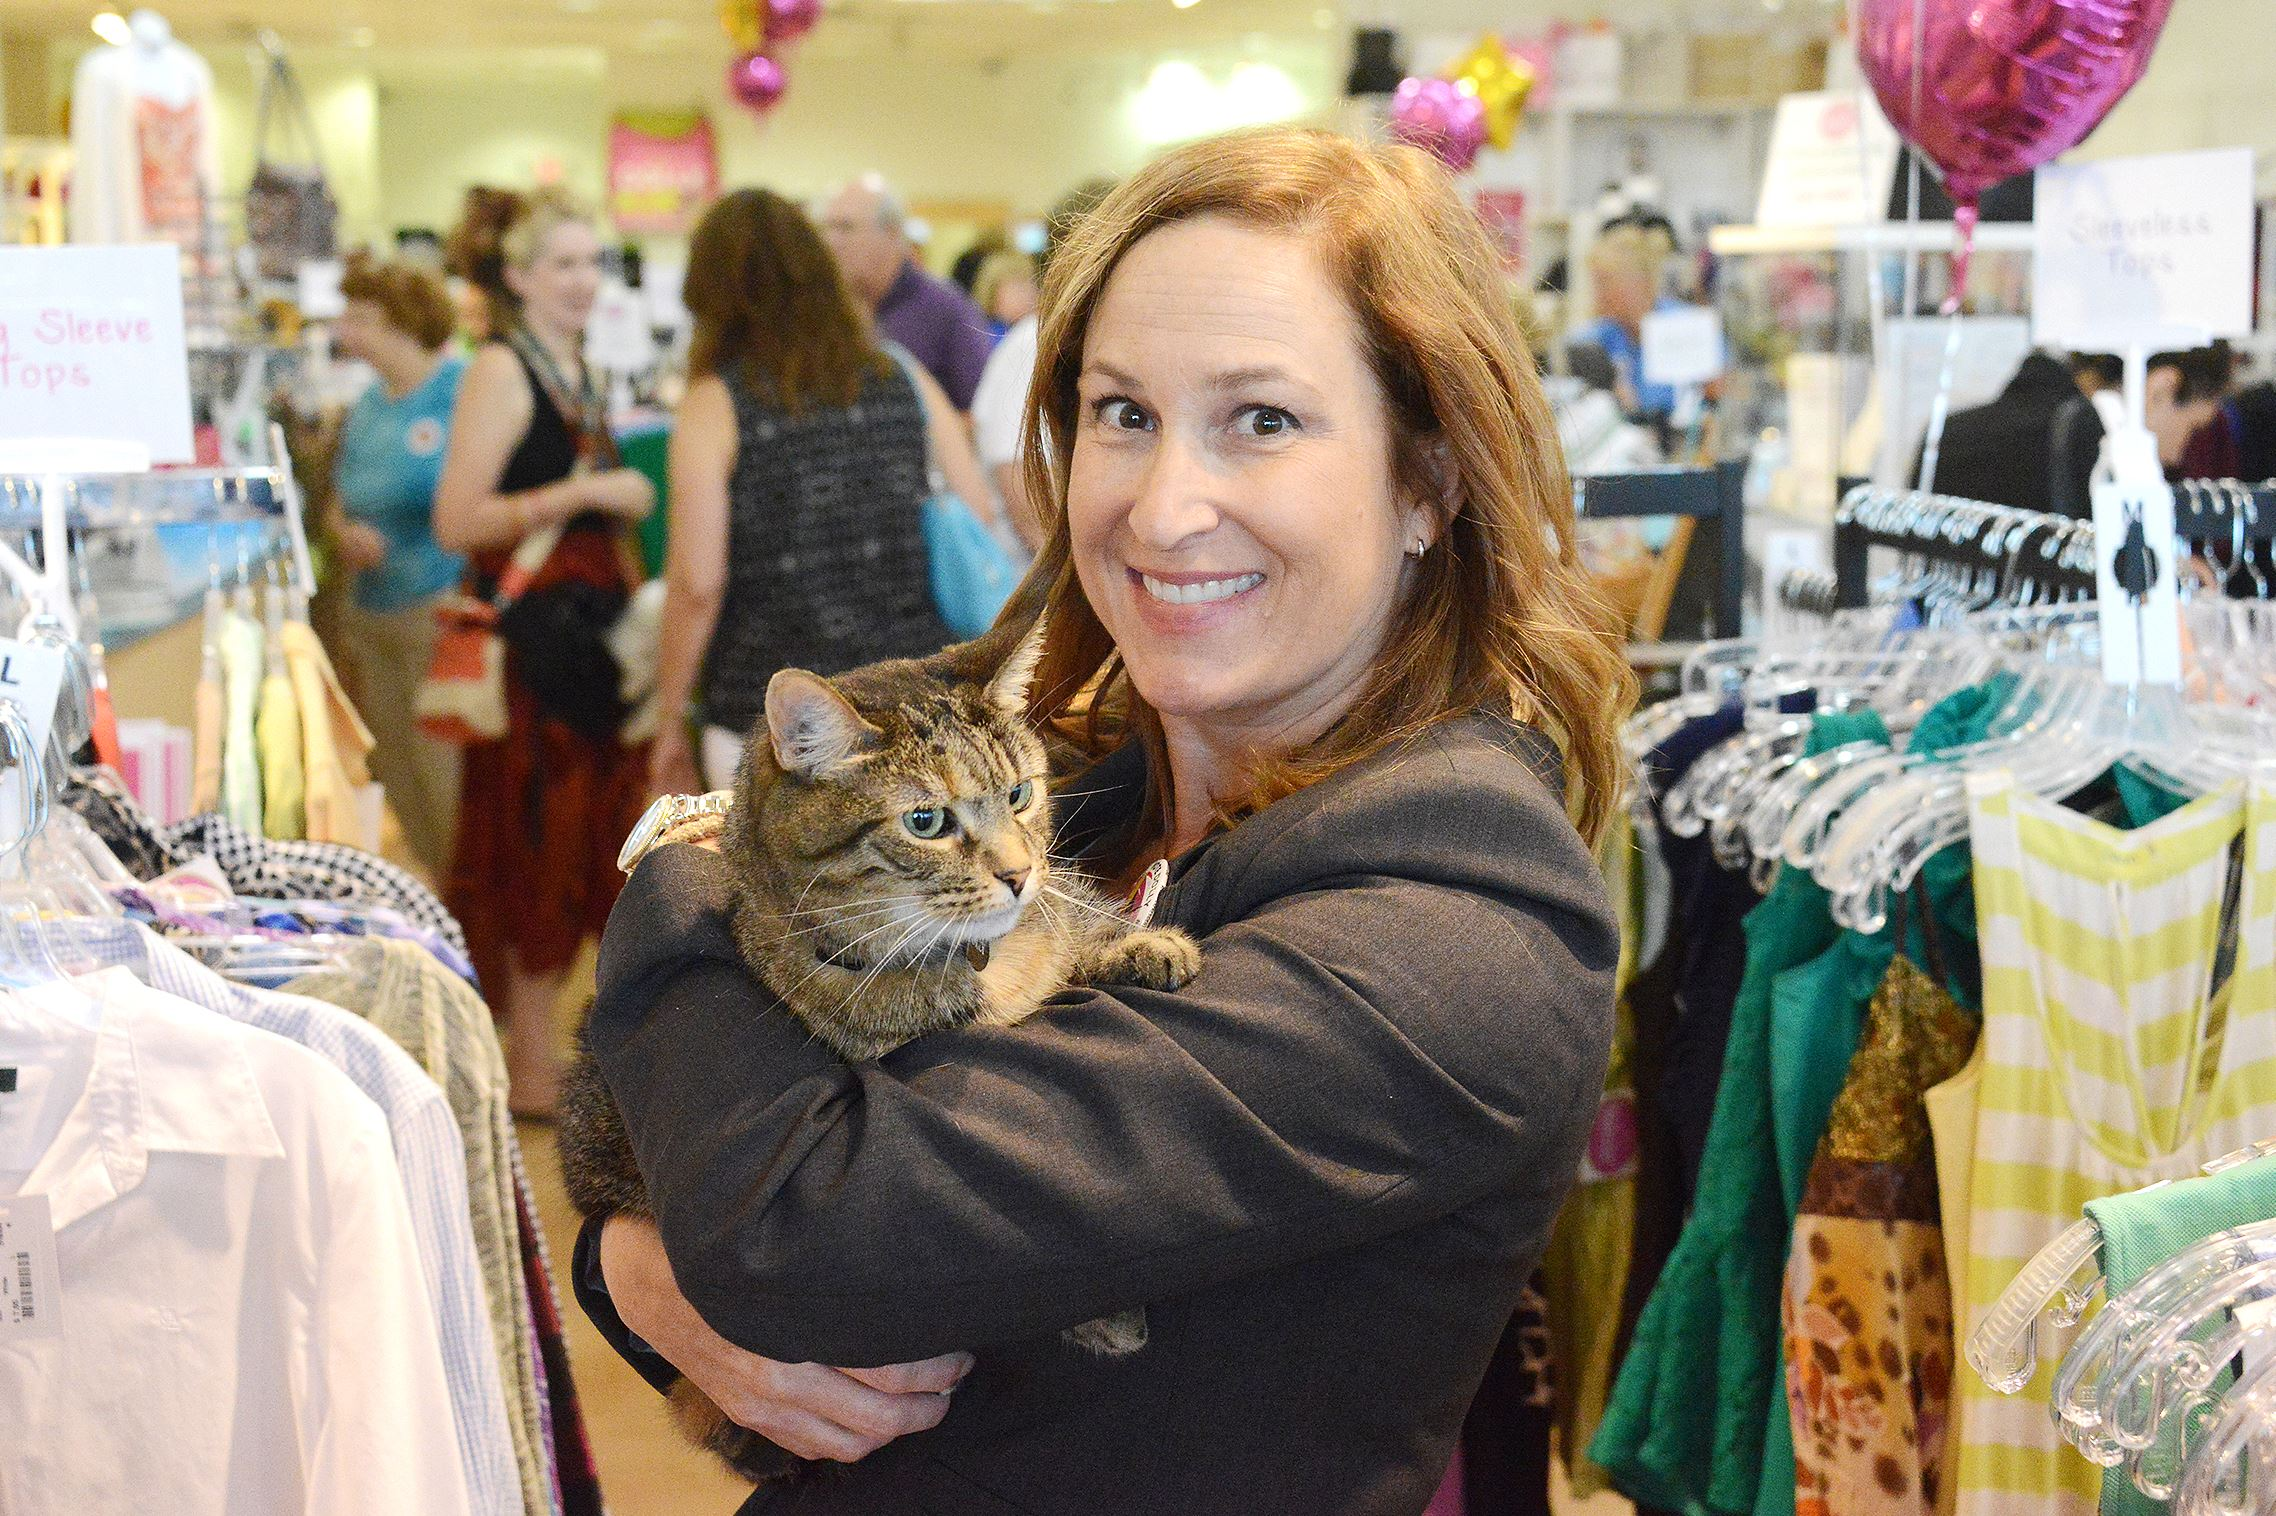 20160722lf-Cat01 Nancy Lee is closing WearWoof at the end of the month. Proceeds from the resale women's clothing shop go to animal welfare groups.